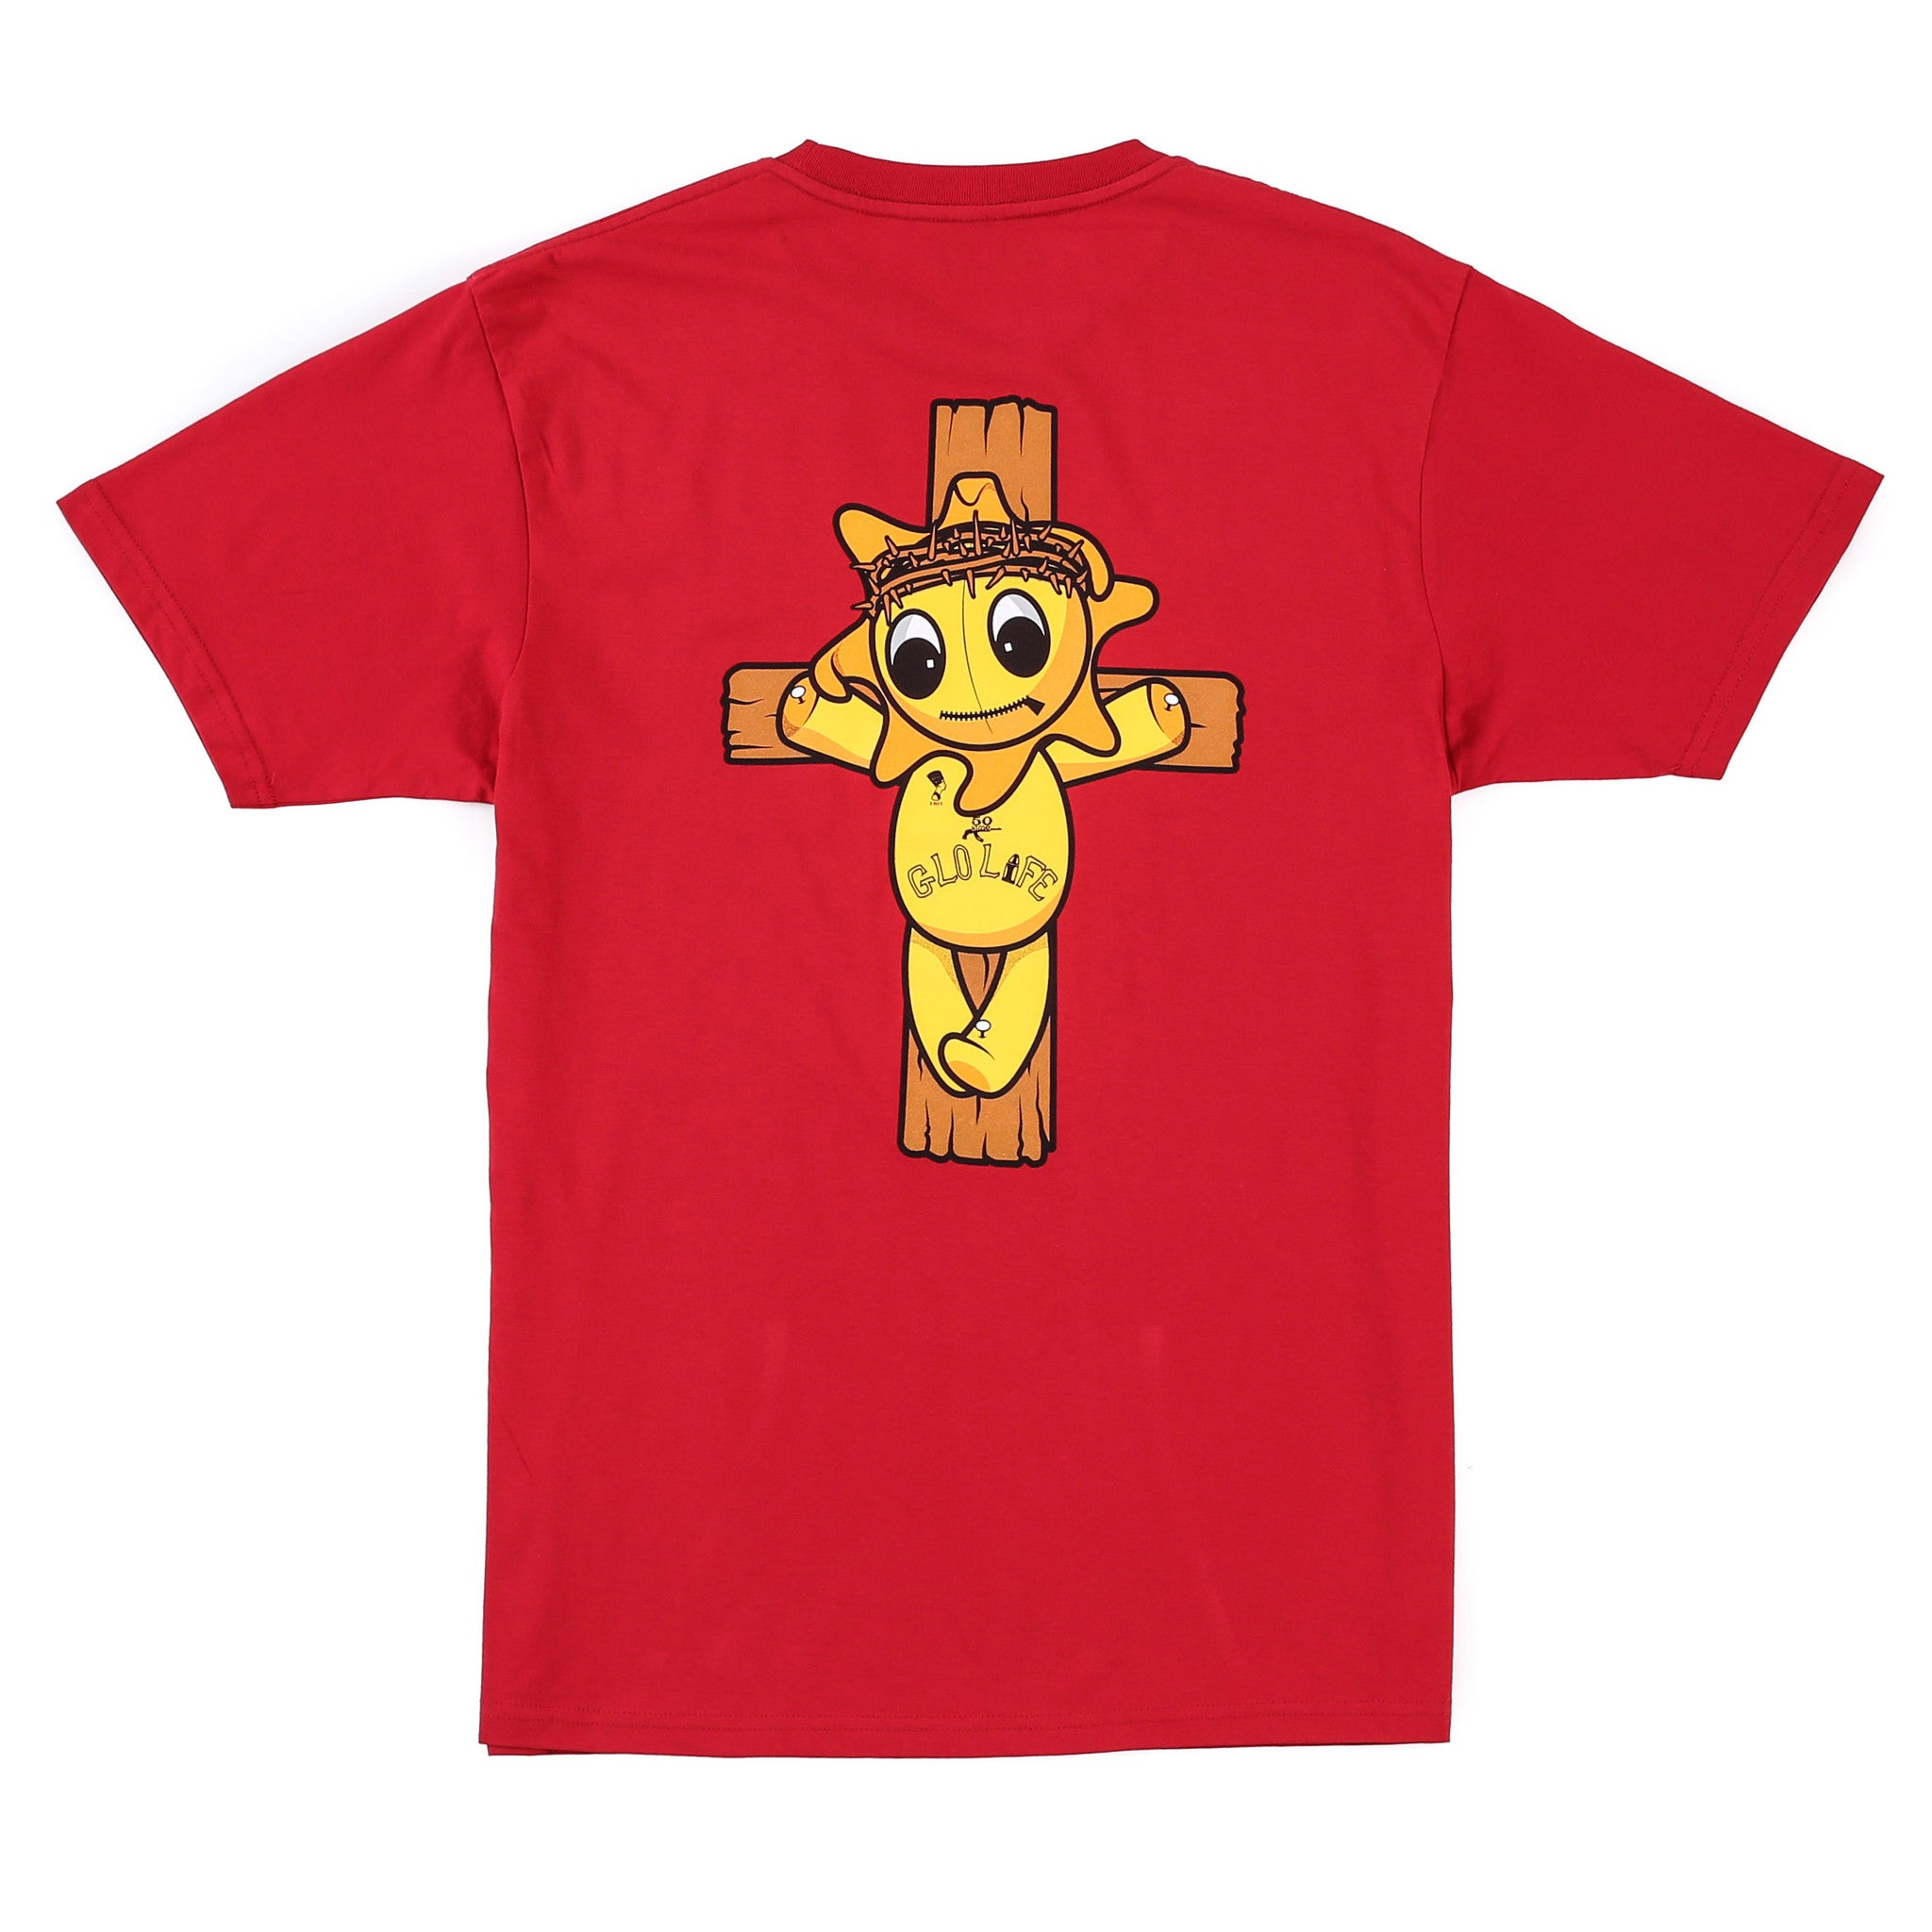 Glo Religion Cross Tee (Red)